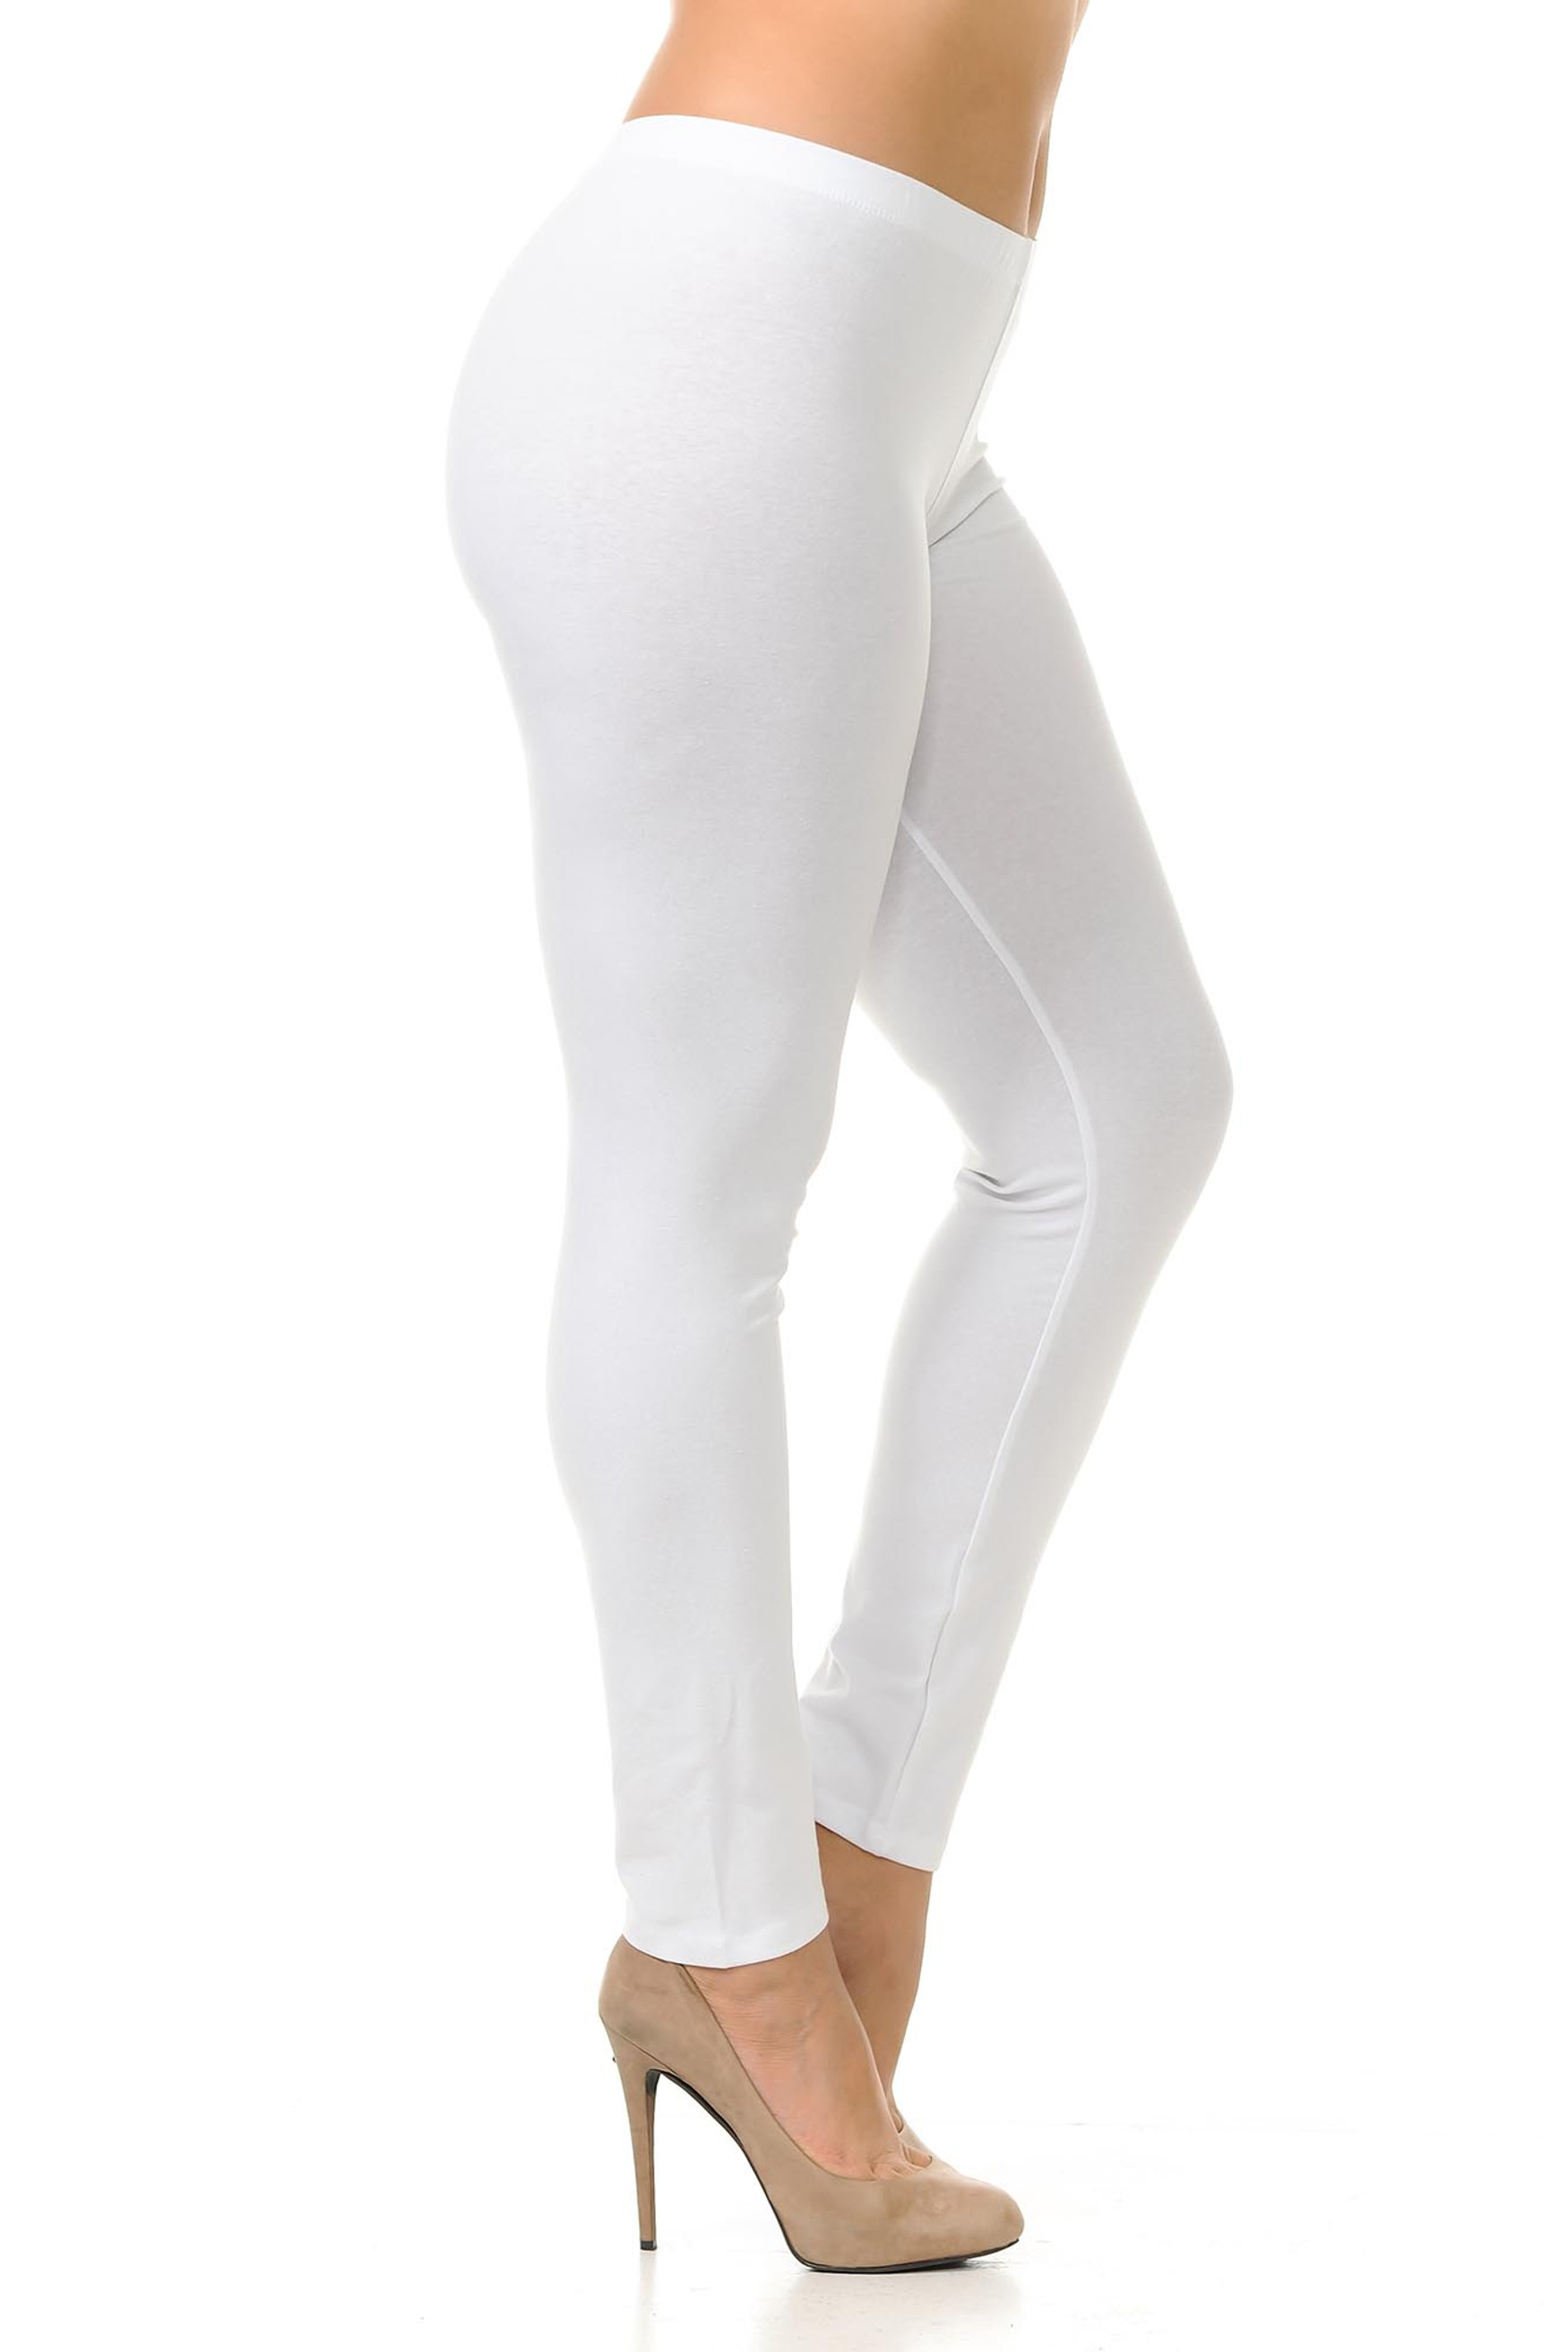 Right side view of white plus size USA Cotton Full Length Leggings.